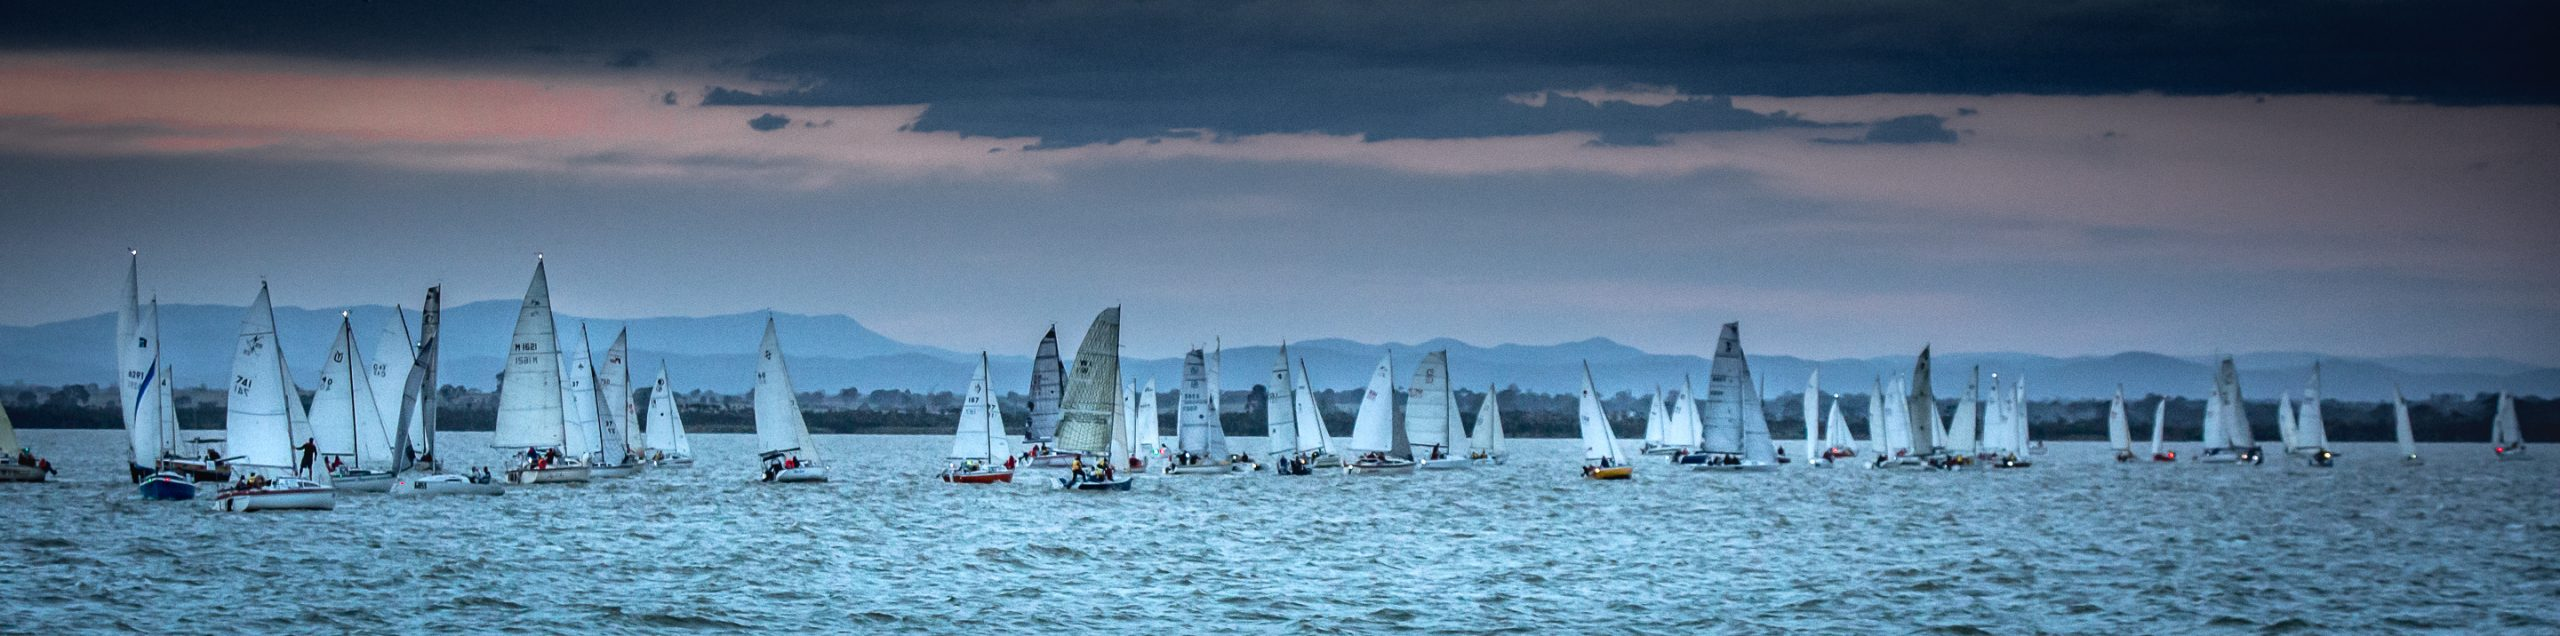 Hundreds-of-boats-are-expected-to-compete-in-the-50th-anniversary-race